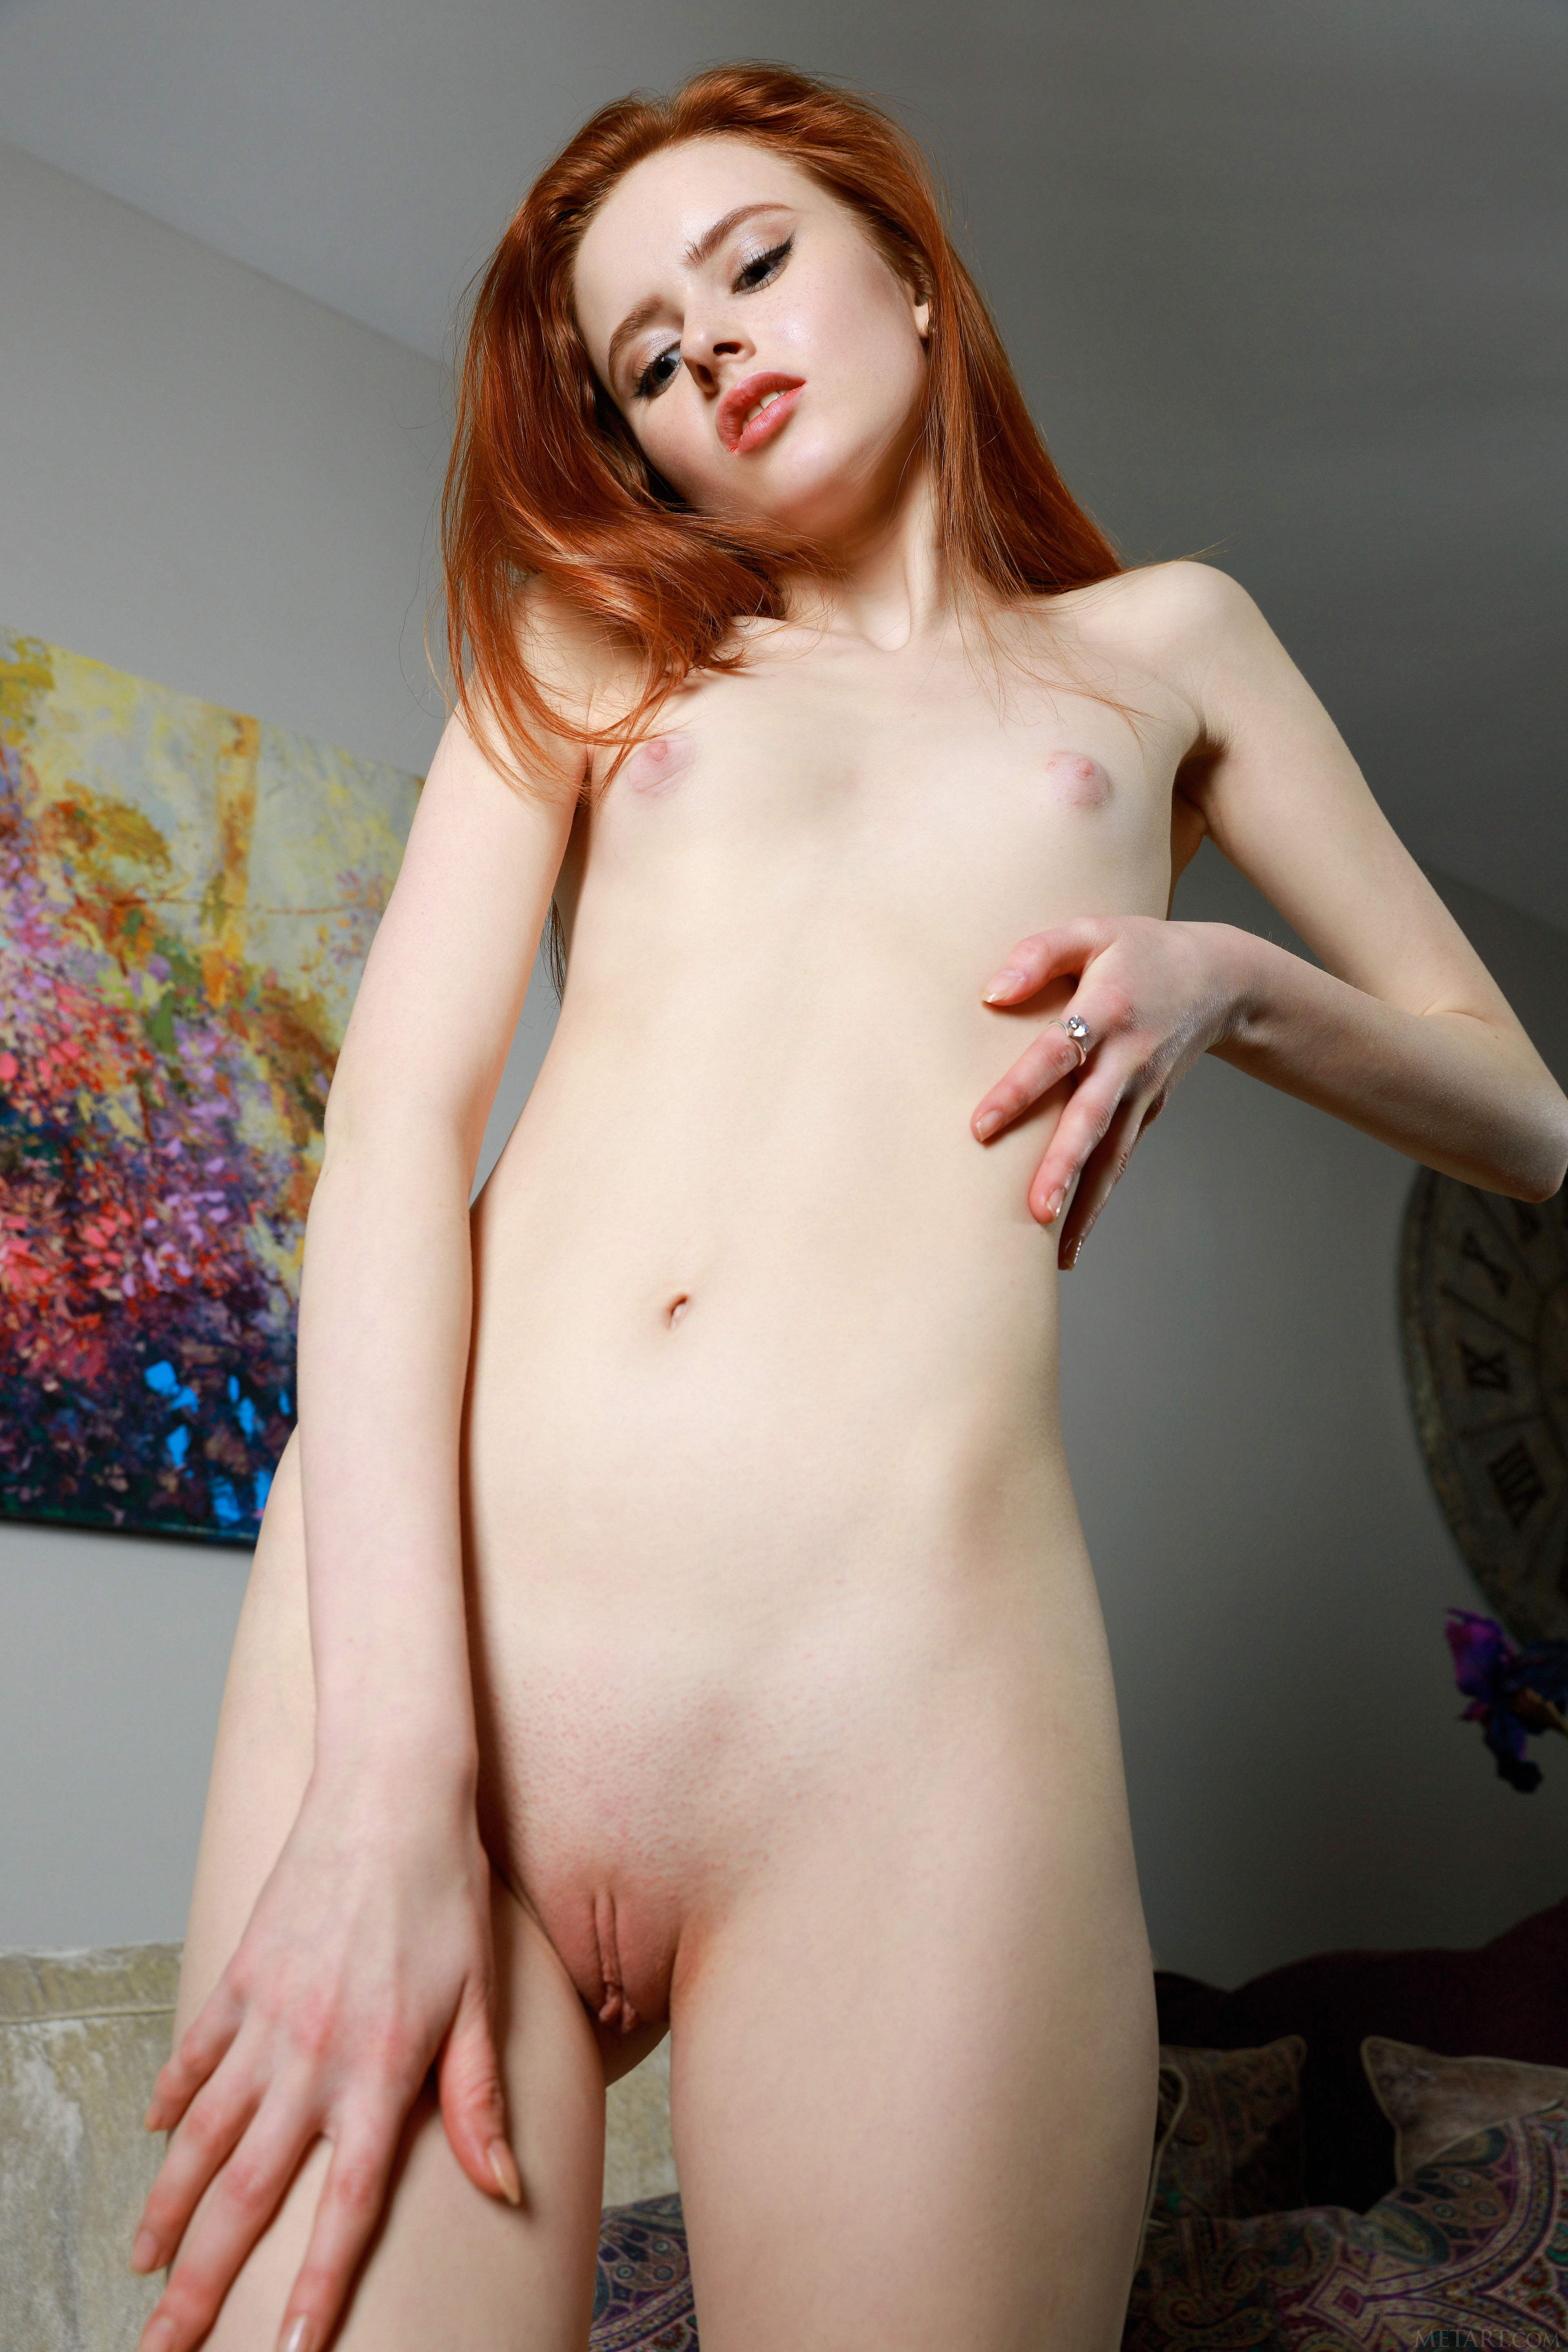 Skinny red pussy gallery